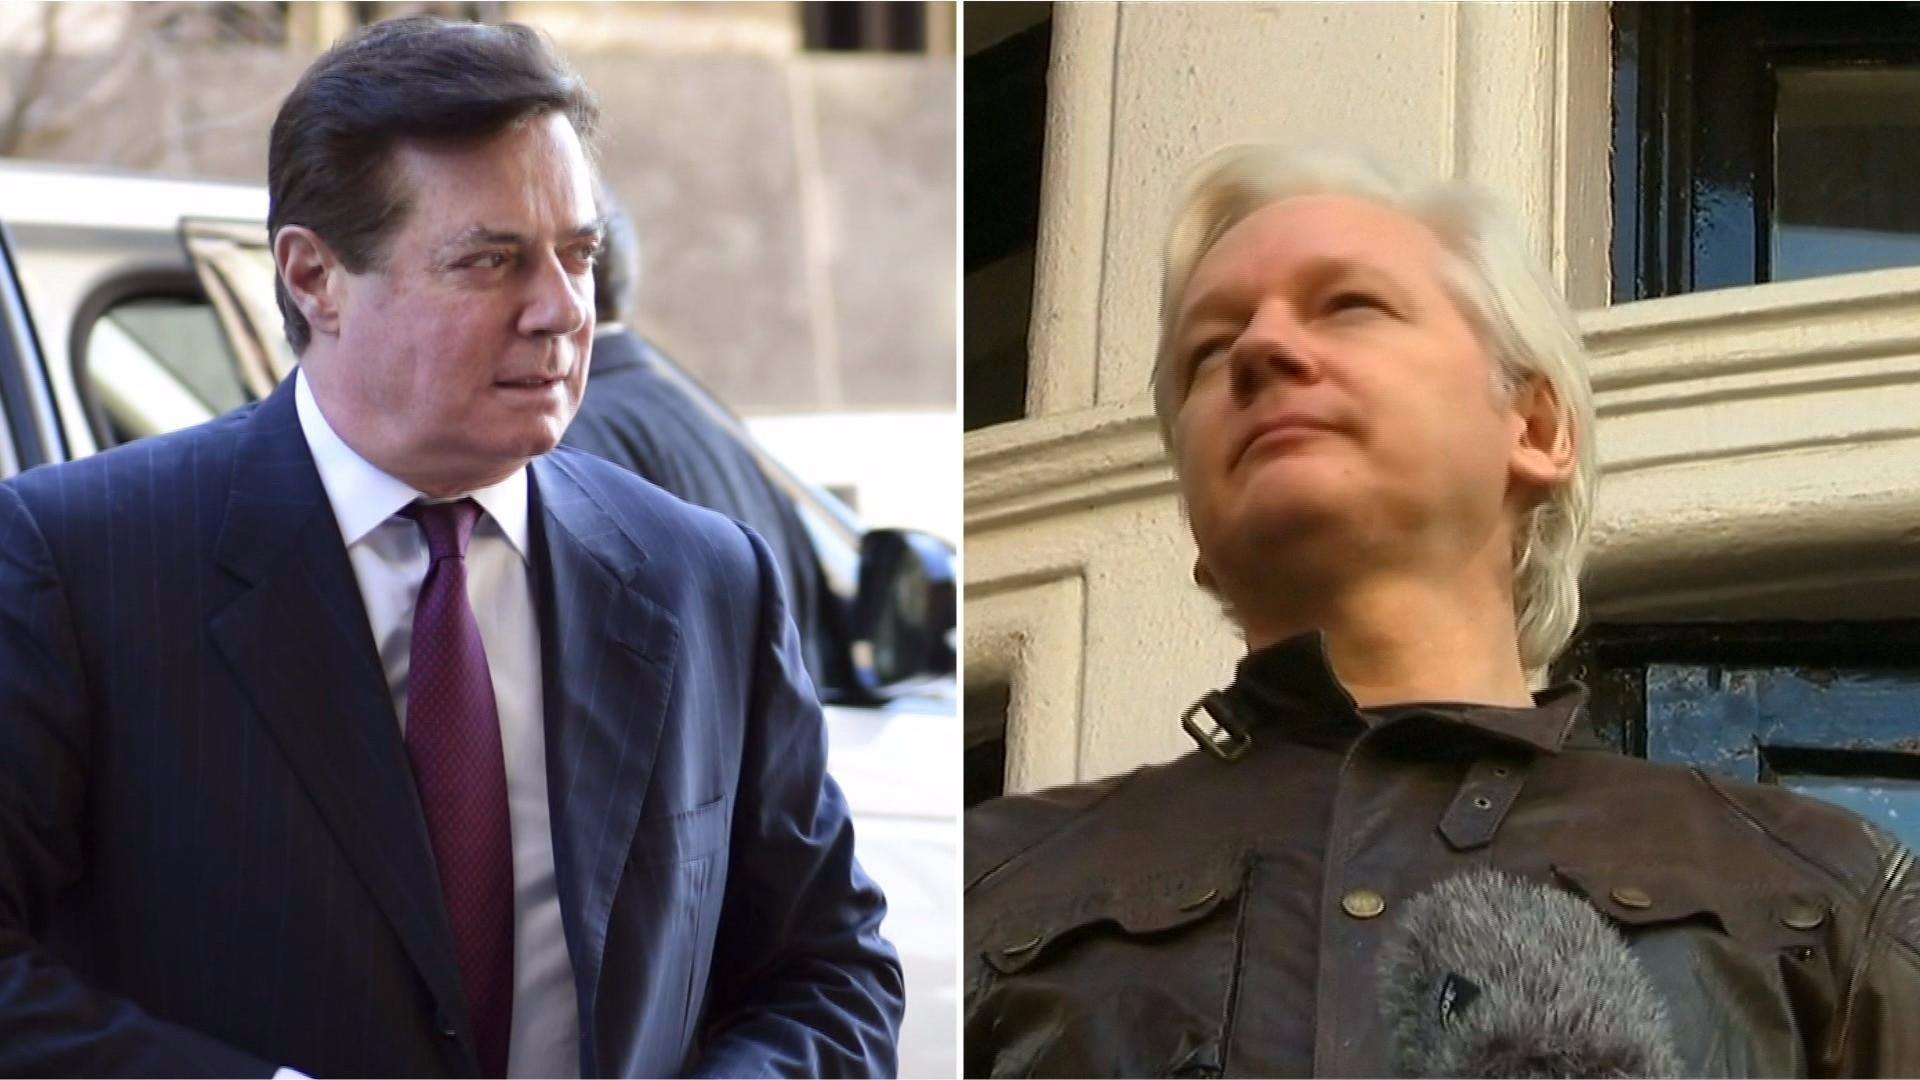 Guardian report: Manafort held secret talks with WikiLeaks founder Julian Assange